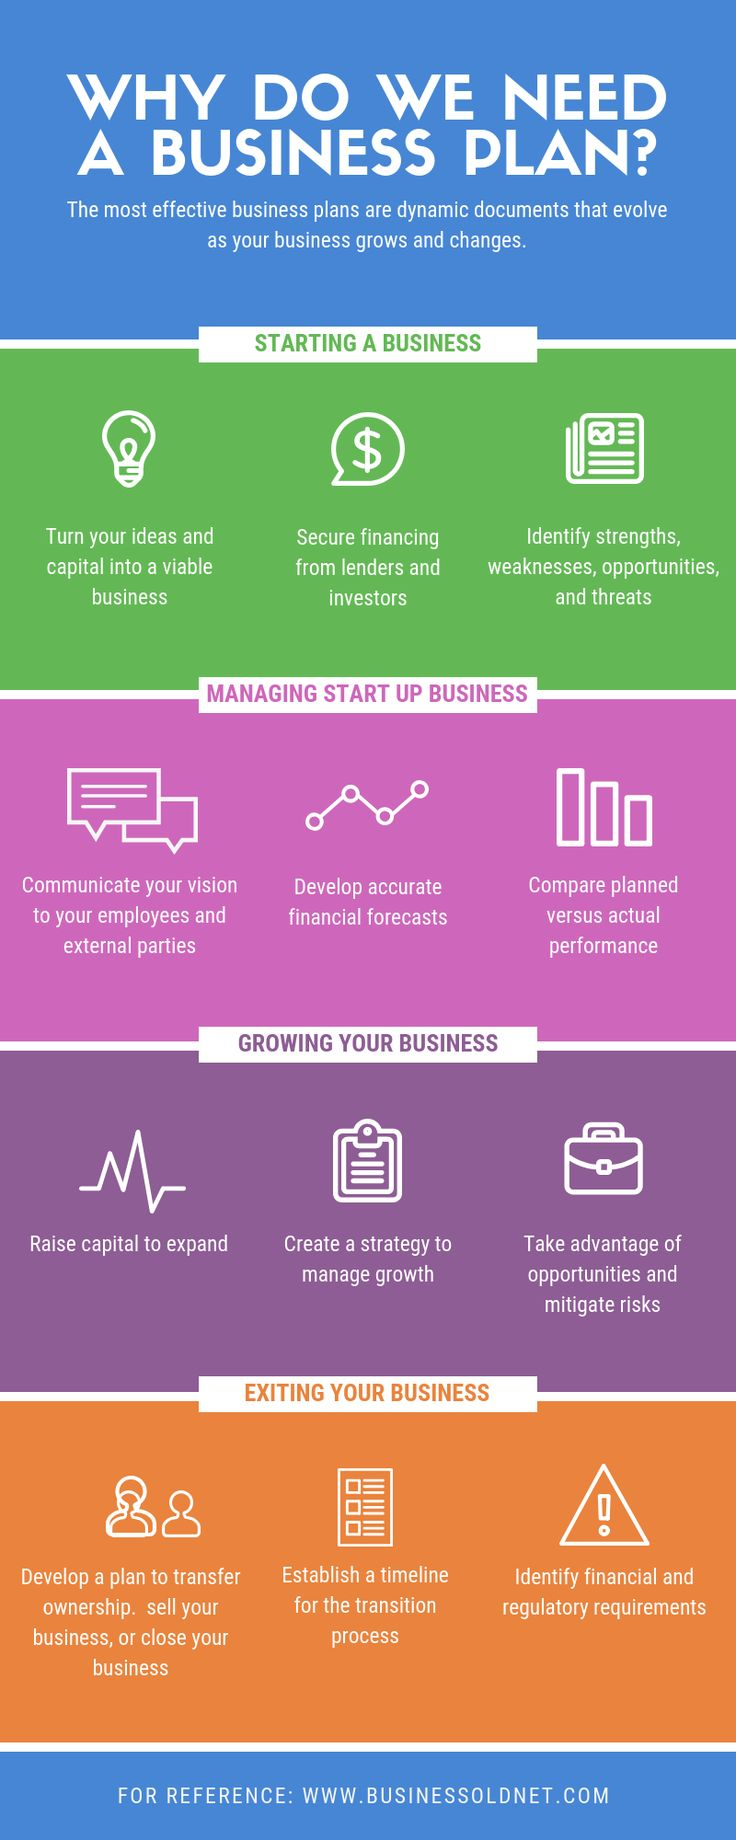 Definition of Business Planning, Benefits and Types for